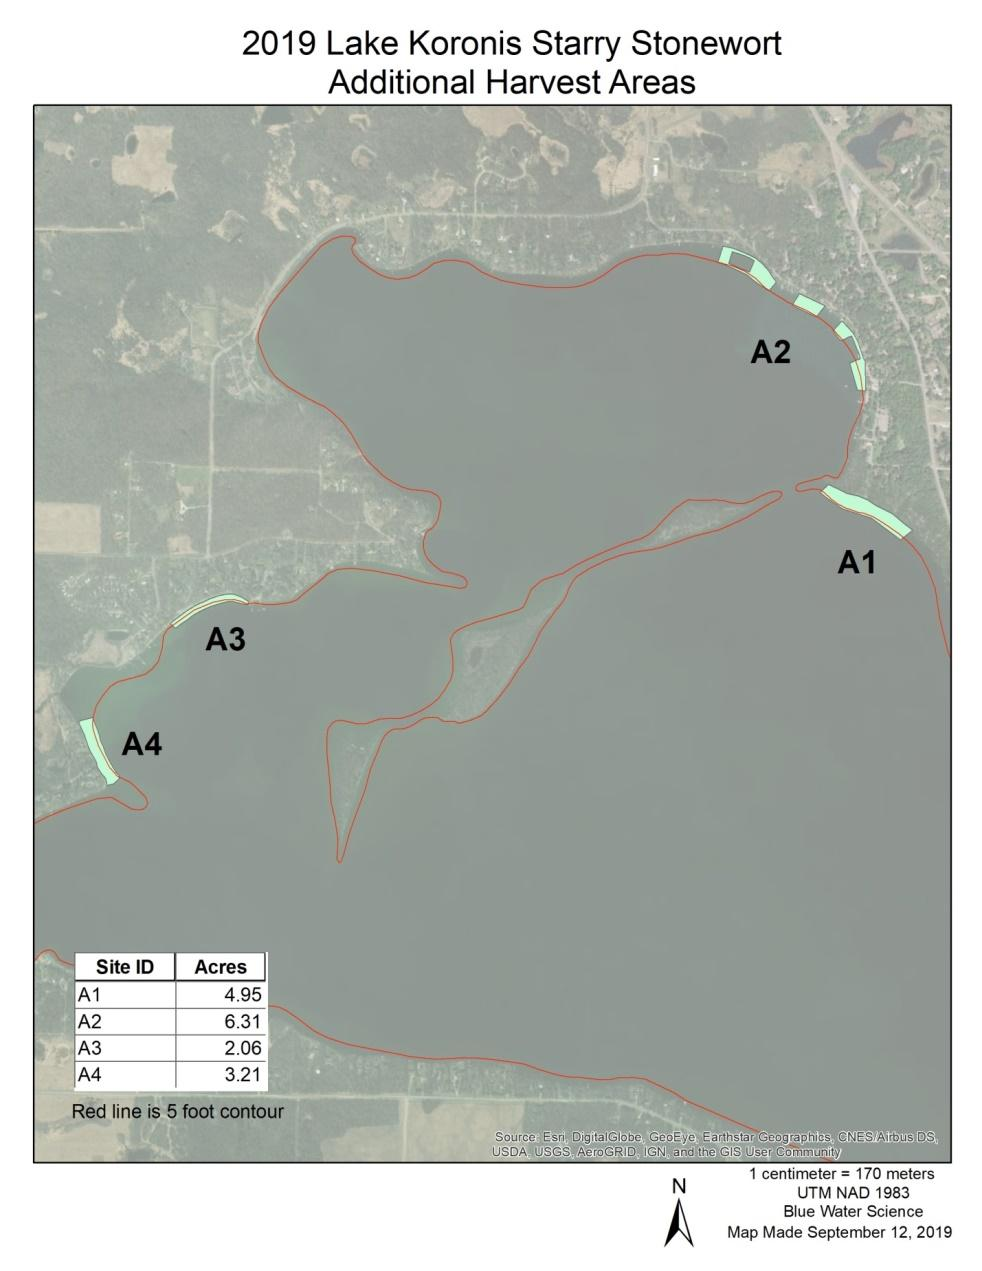 C:\Users\Farnum\AppData\Local\Microsoft\Windows\INetCache\Content.Outlook\BKNFSSZW\2019 Koronis Starry Stonewort Additional Harvest Areas- Full View- A1- A2-A3- A4.jpg